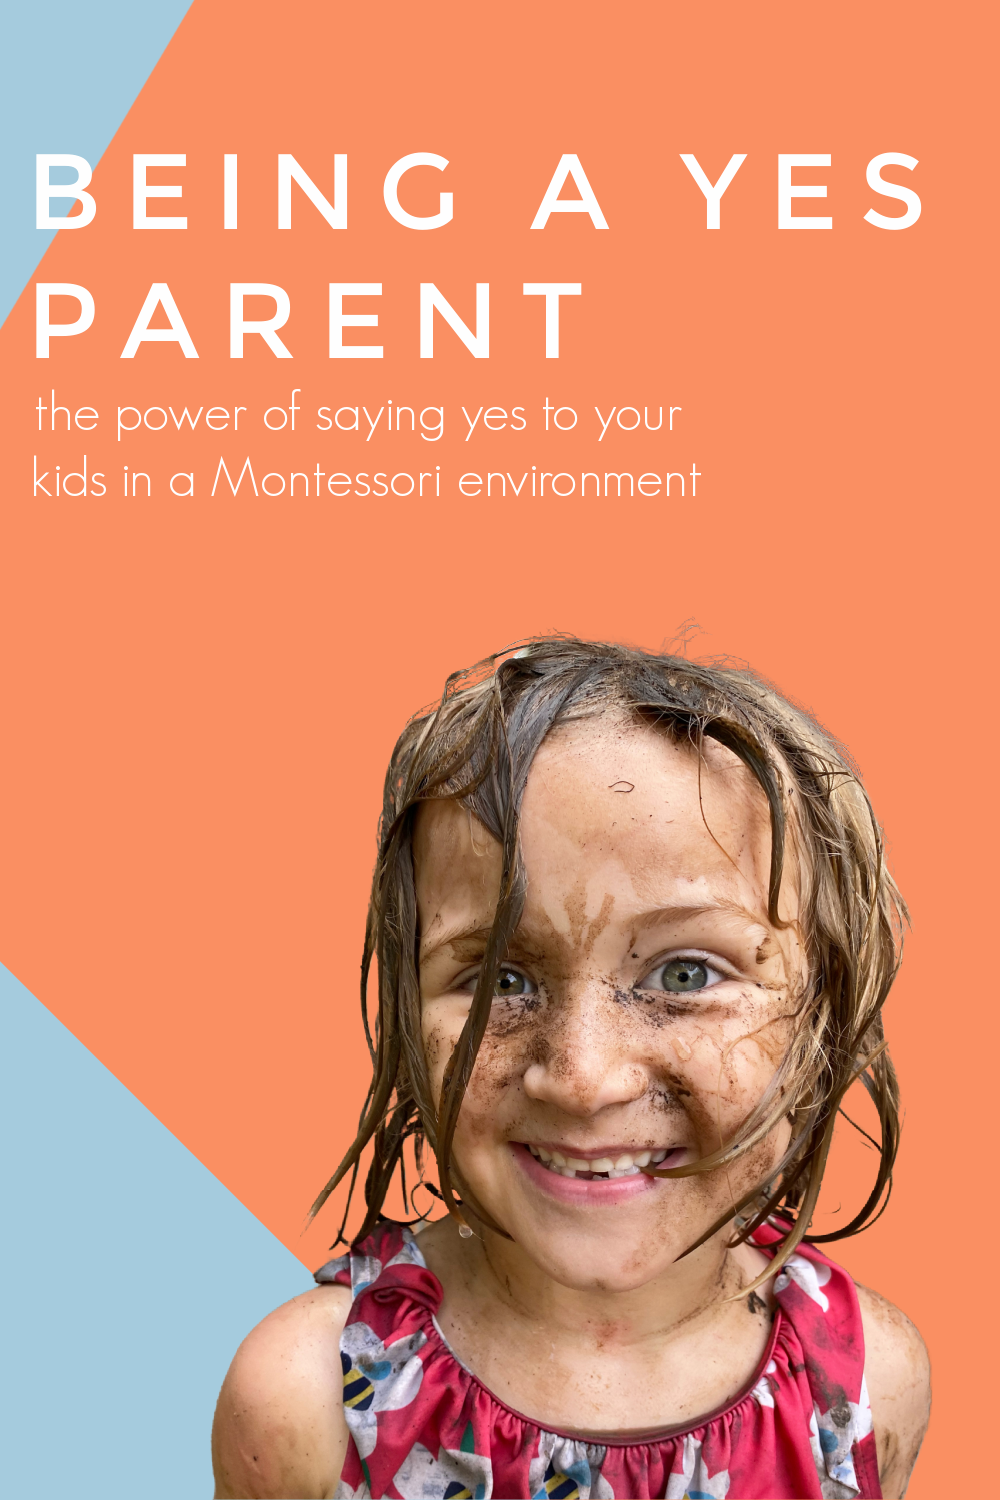 In this Montessori parenting podcast, we discuss the power of saying yes while parenting. These parenting tips help to make life easier for parents.